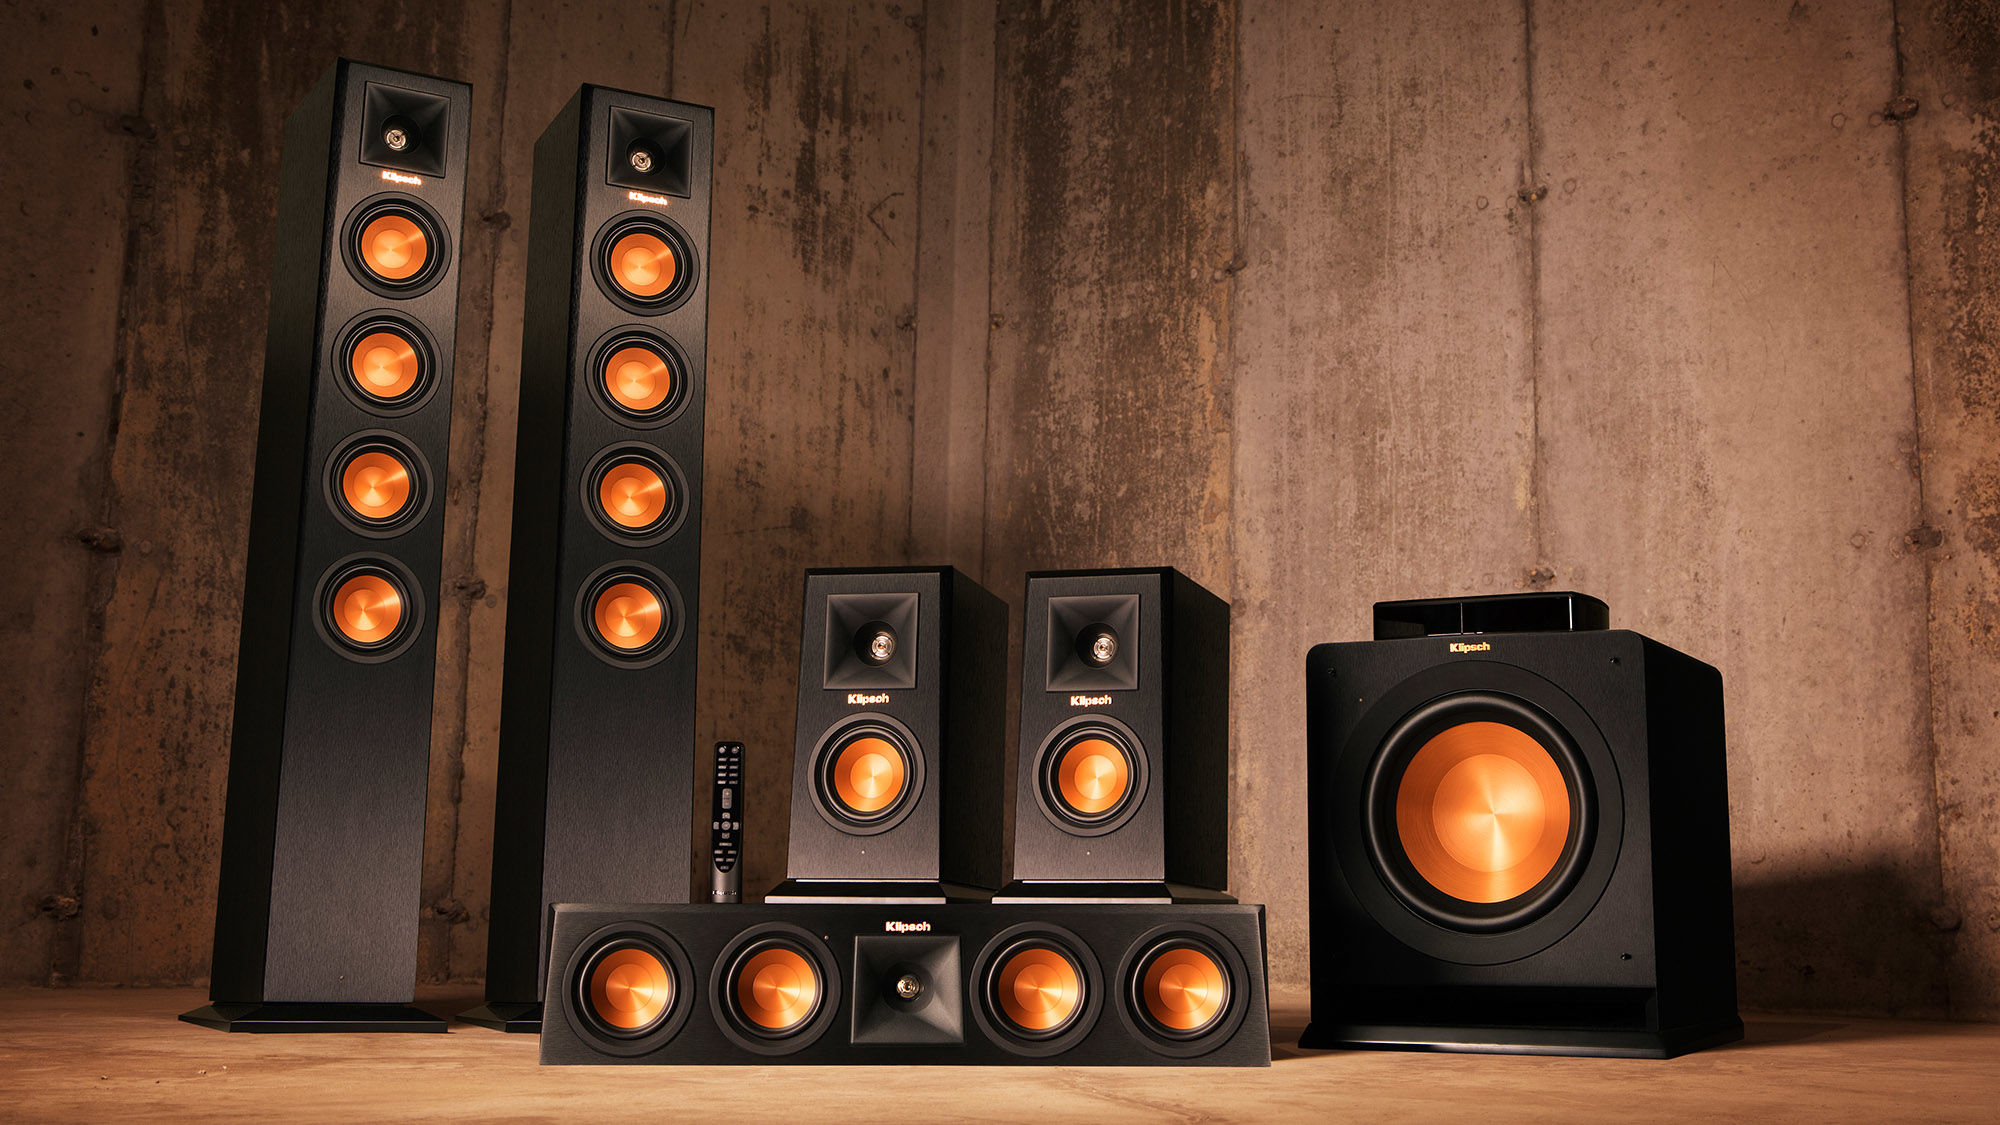 Klipsch wireless speaker system